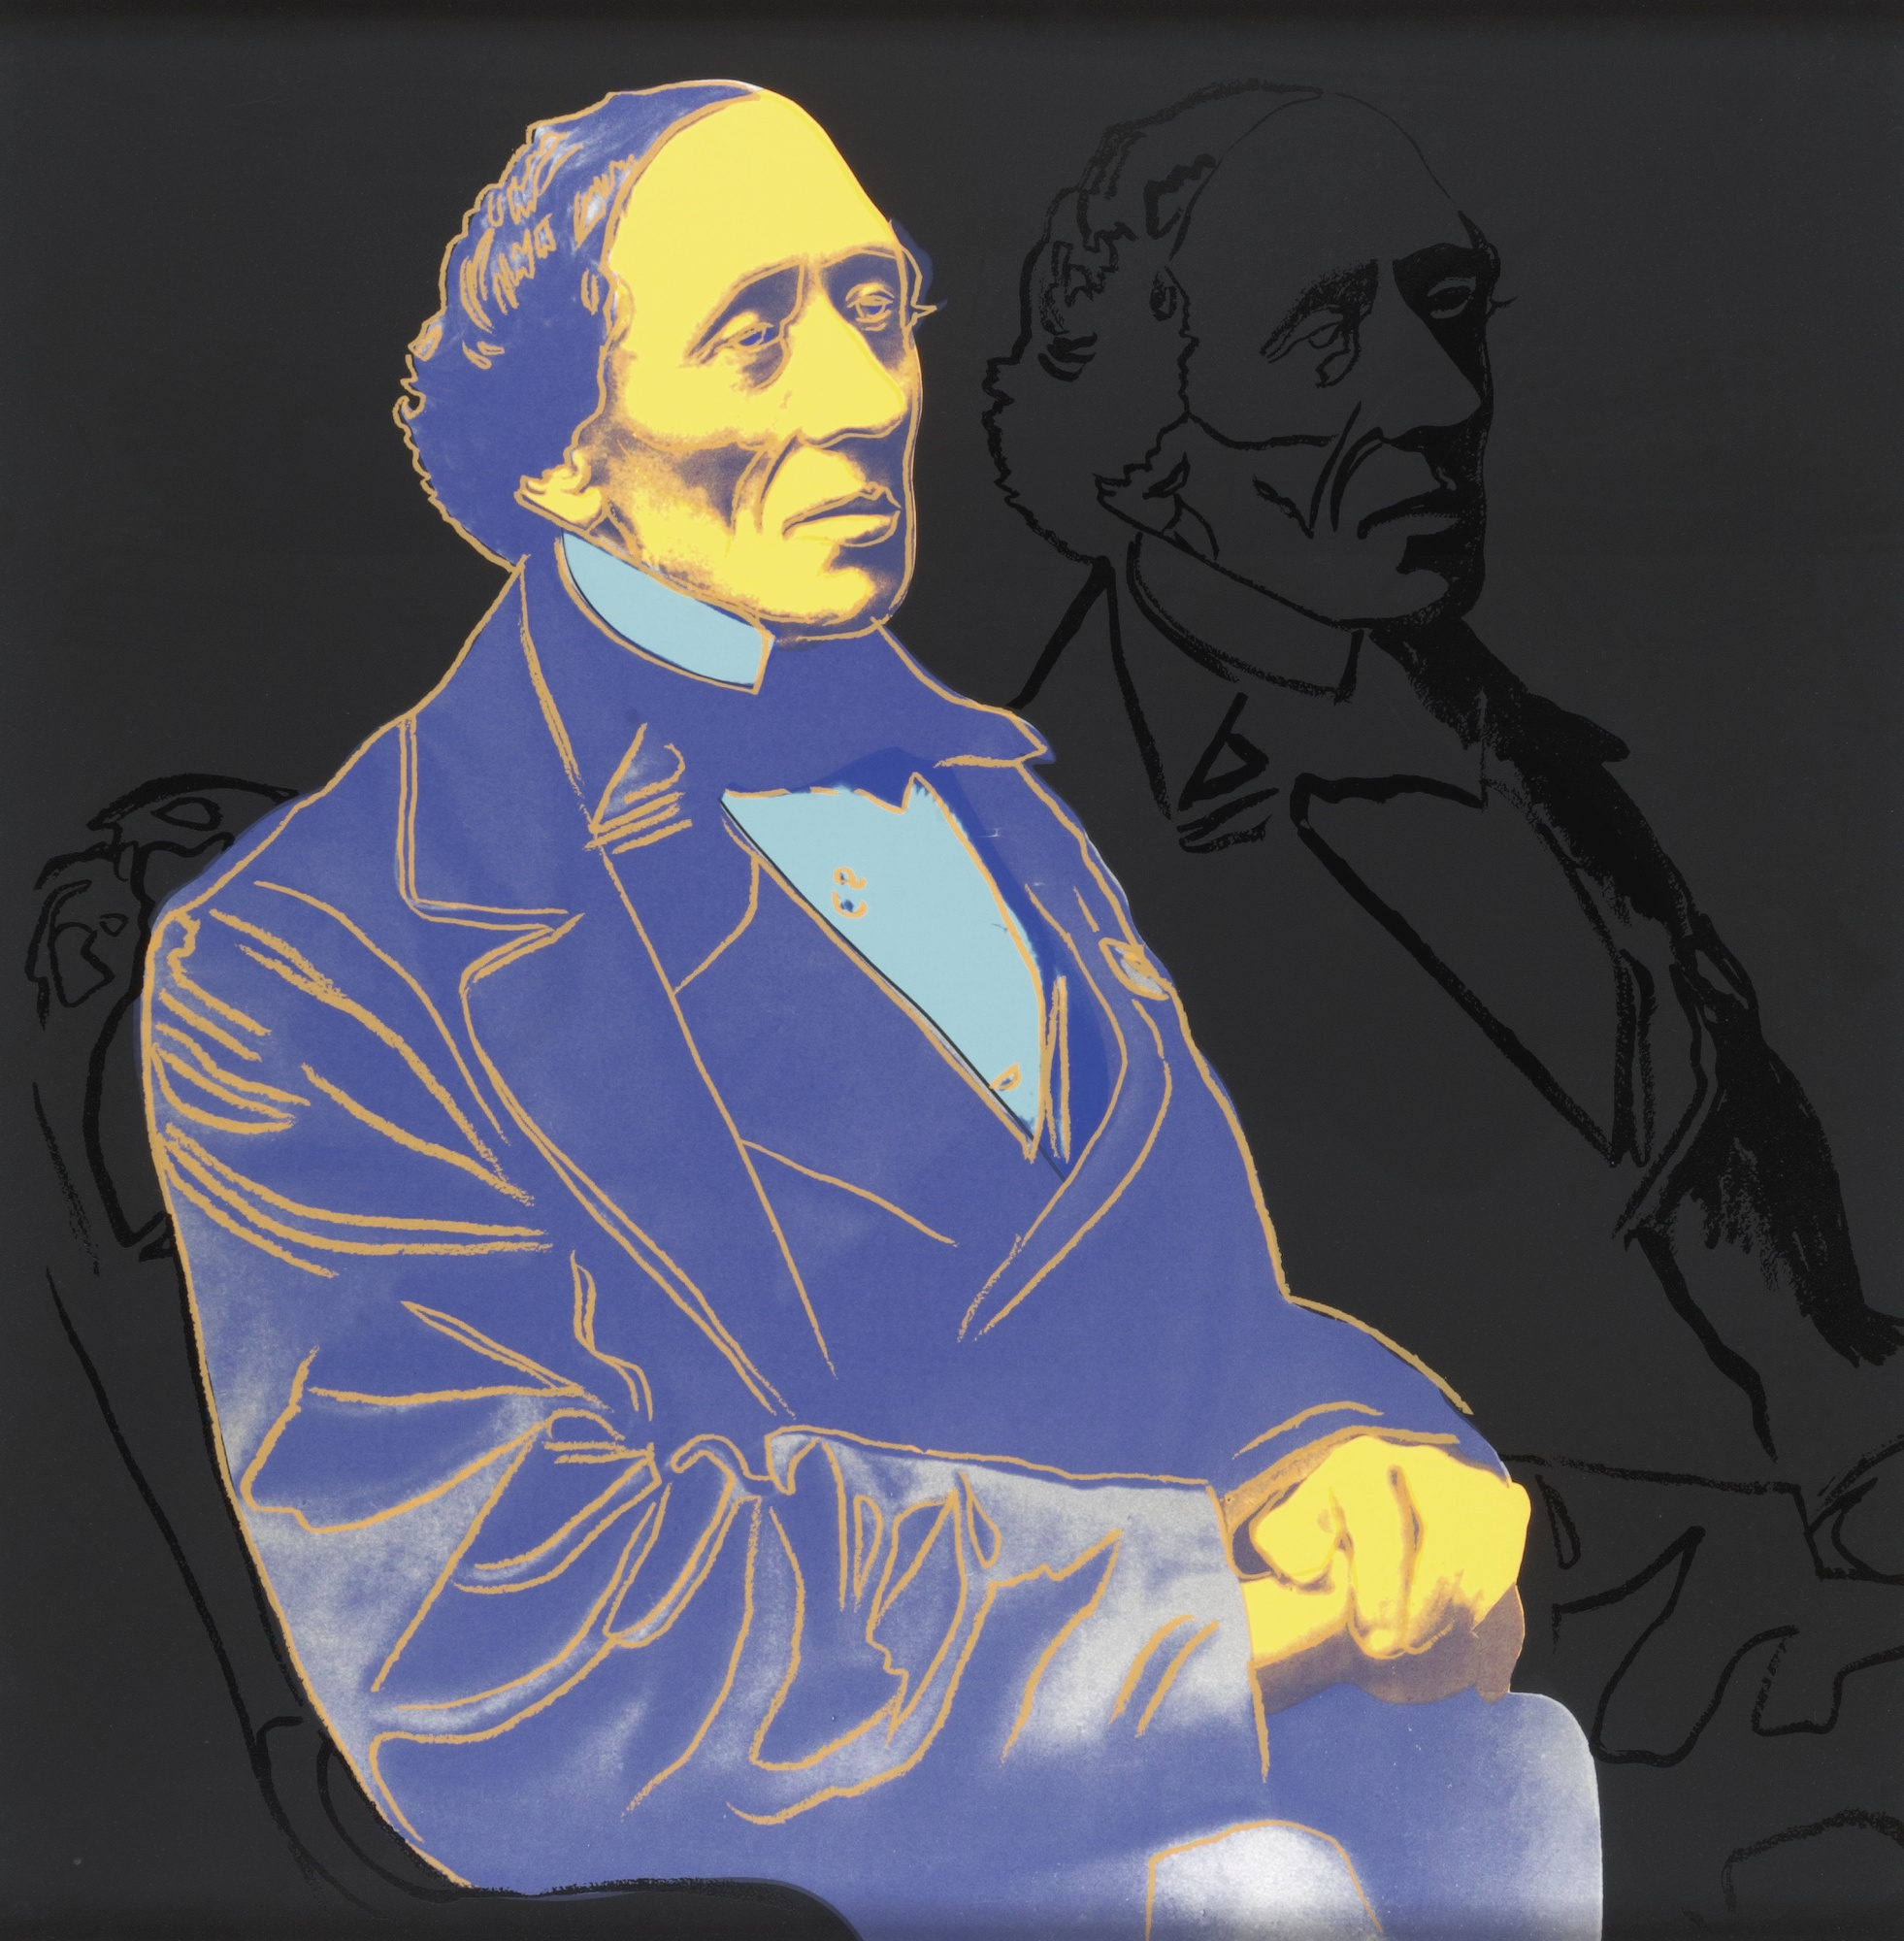 Andy Warhol-Hans Christian Anderson (F. & S. II.398-401)-1987